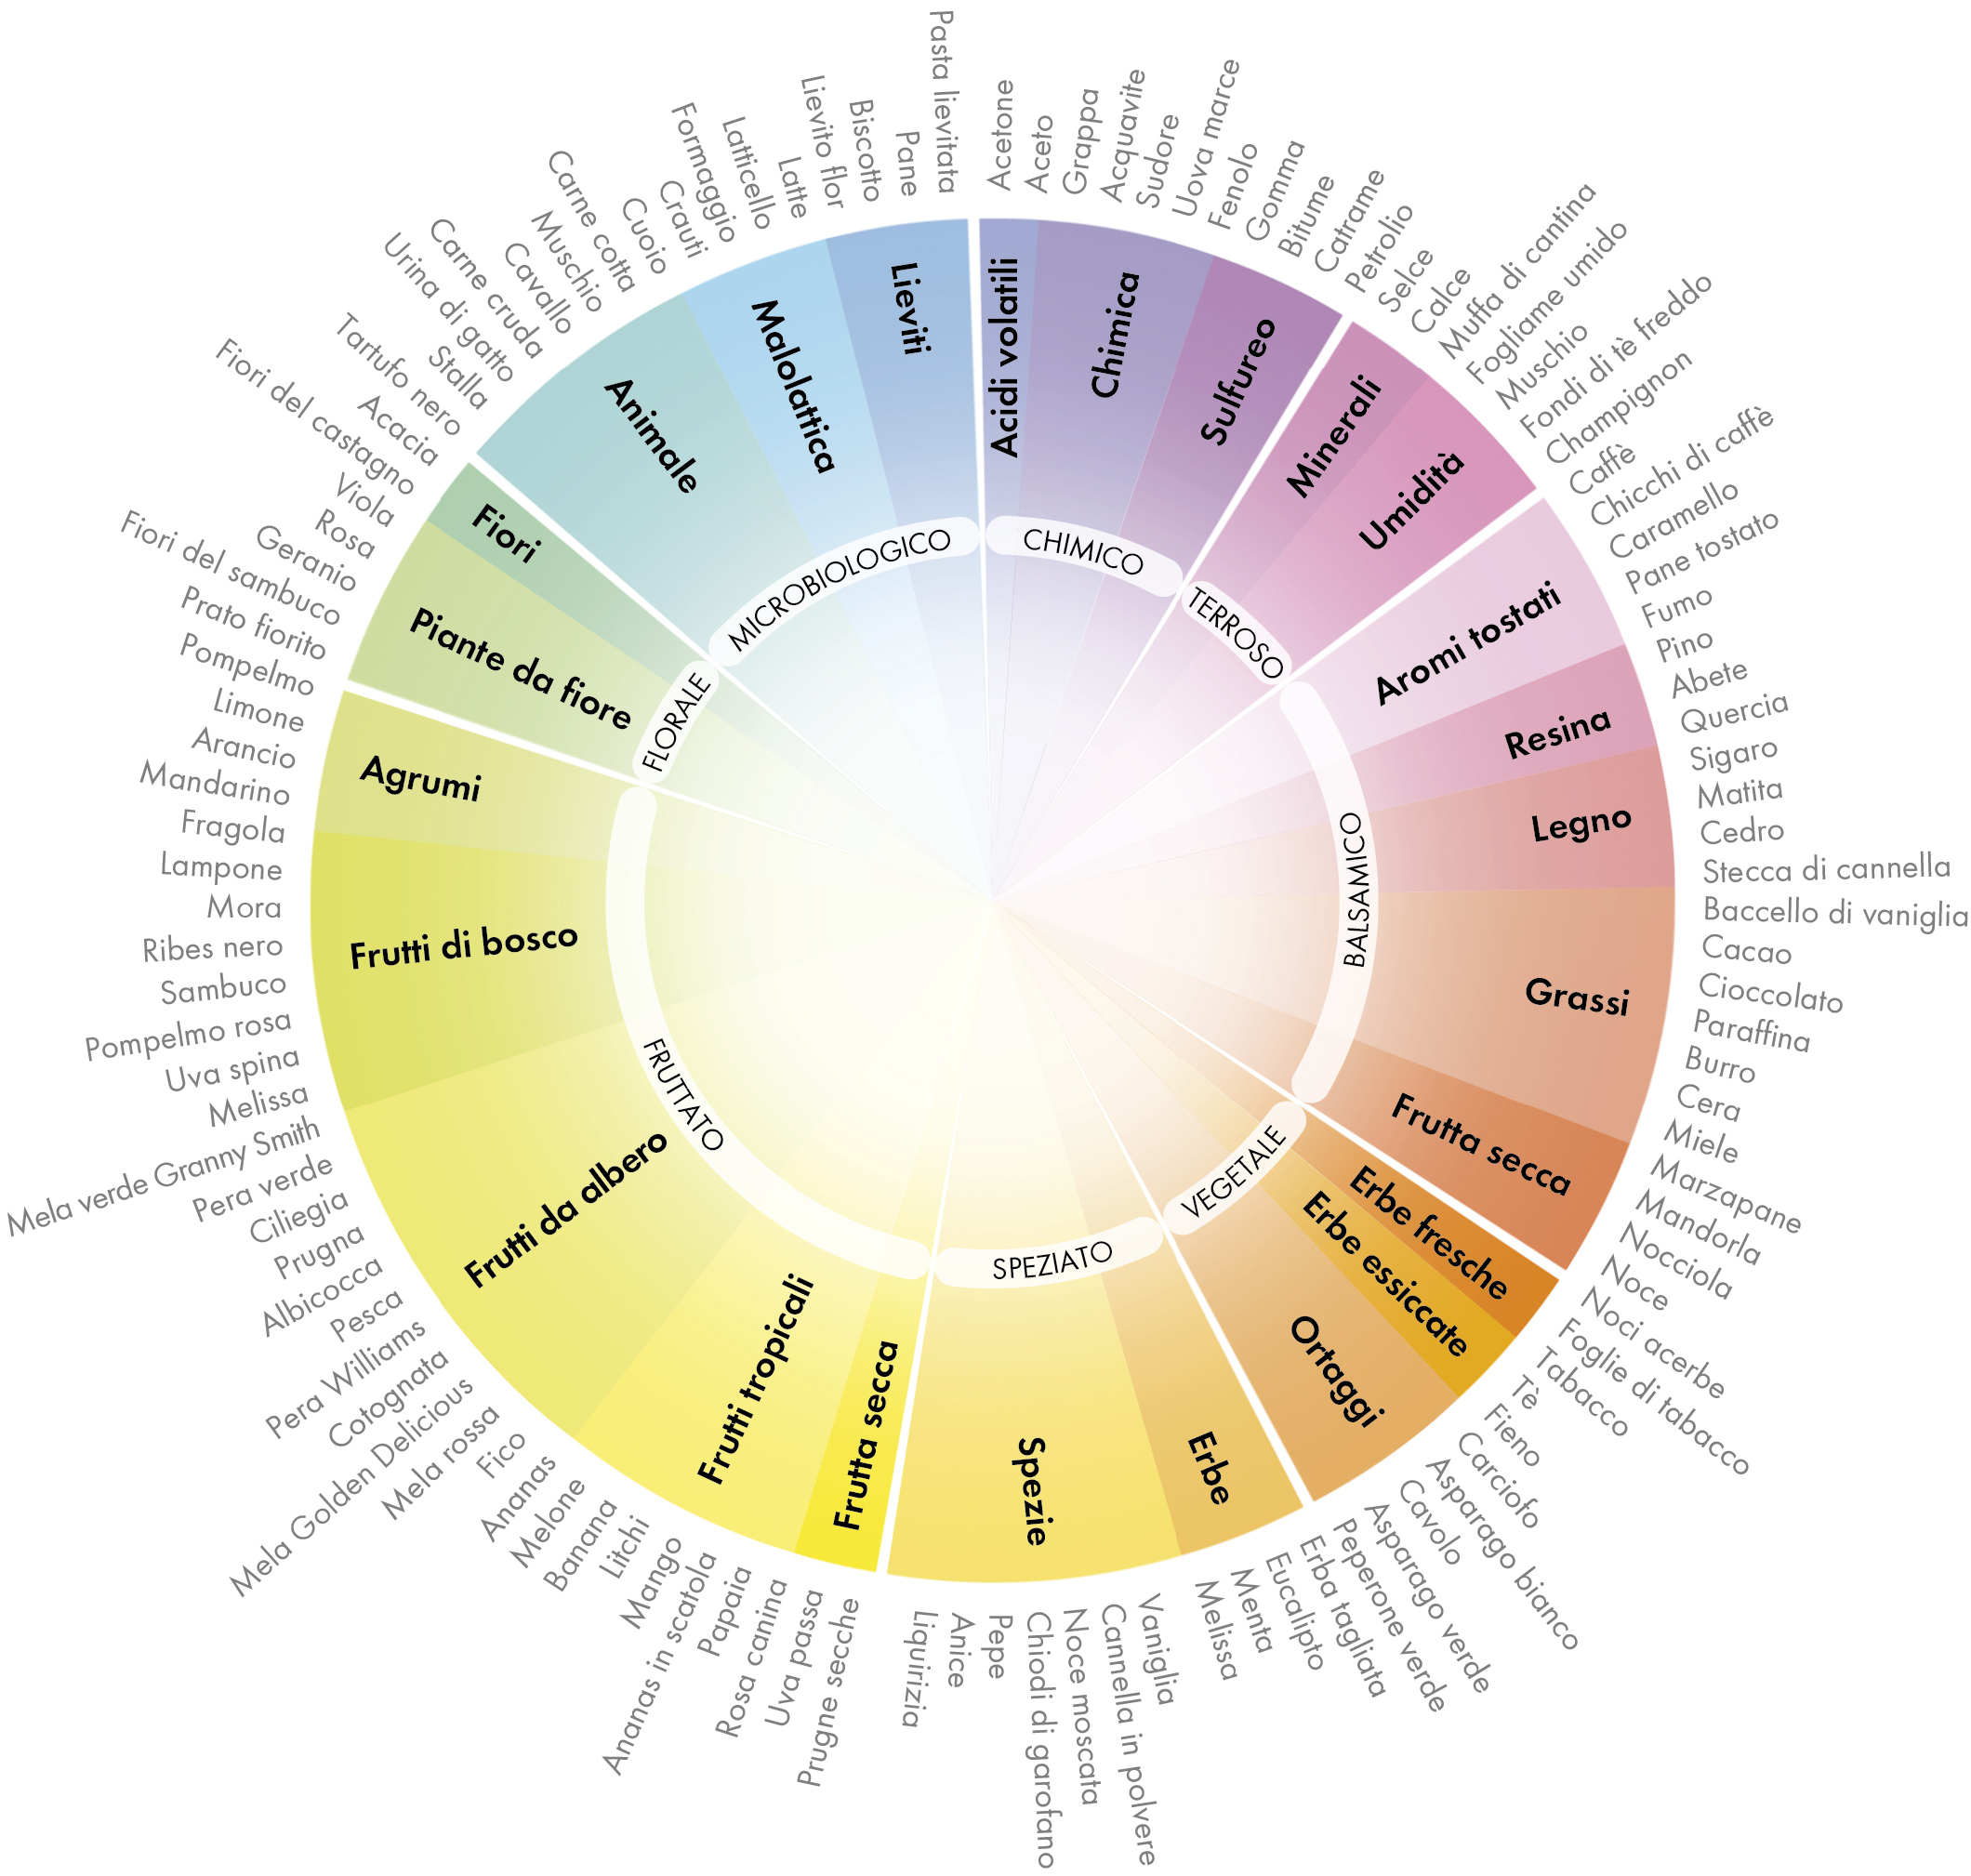 Wheel of aromas and flavours IT